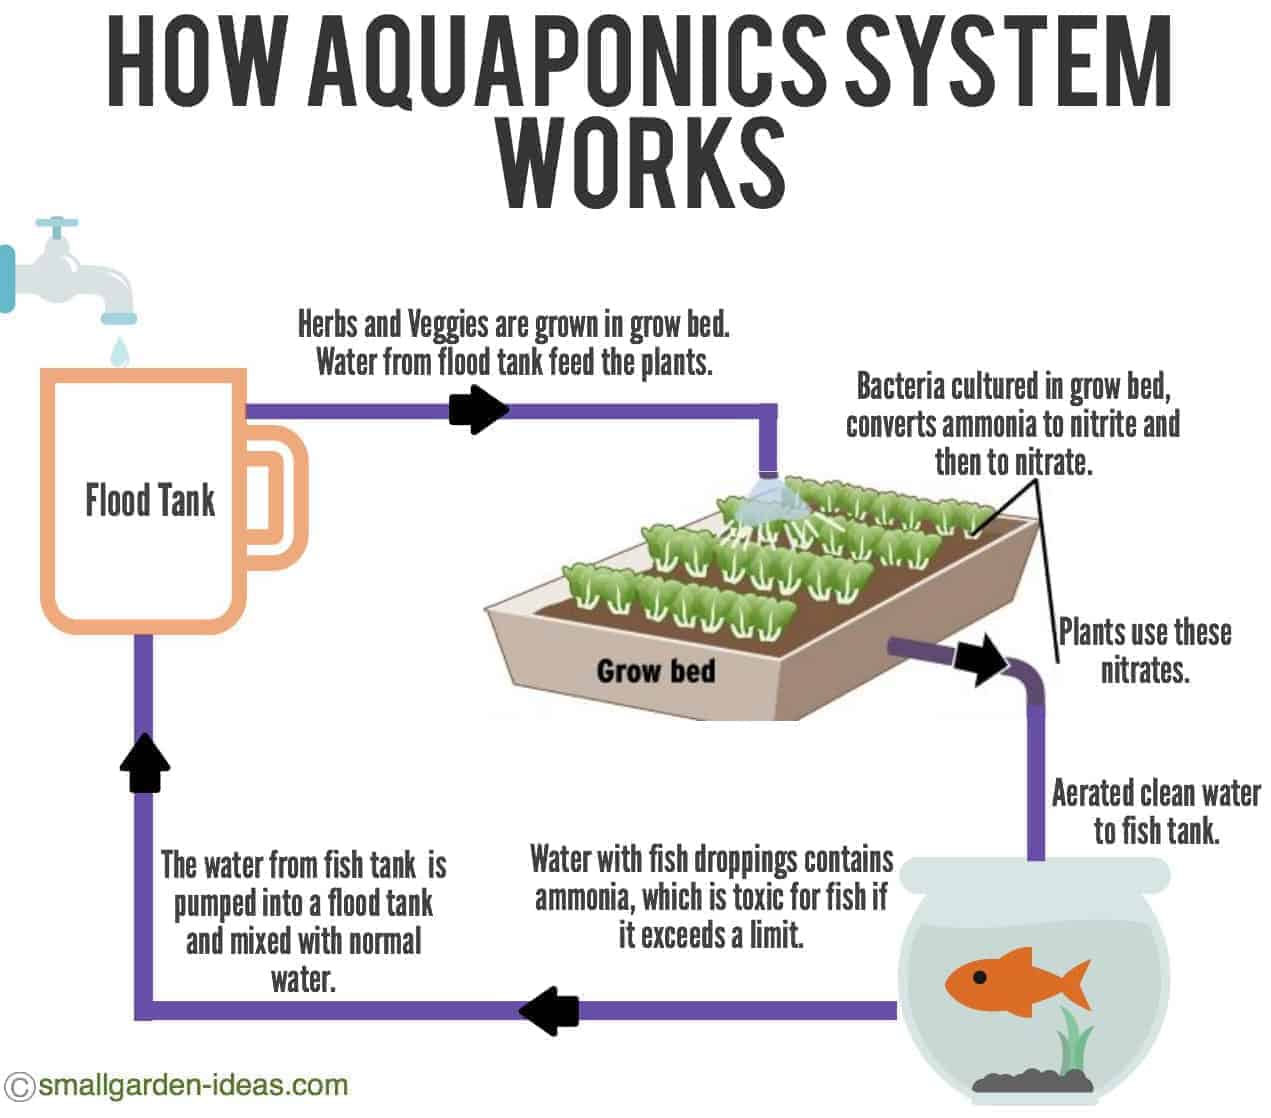 How aquaponic system works